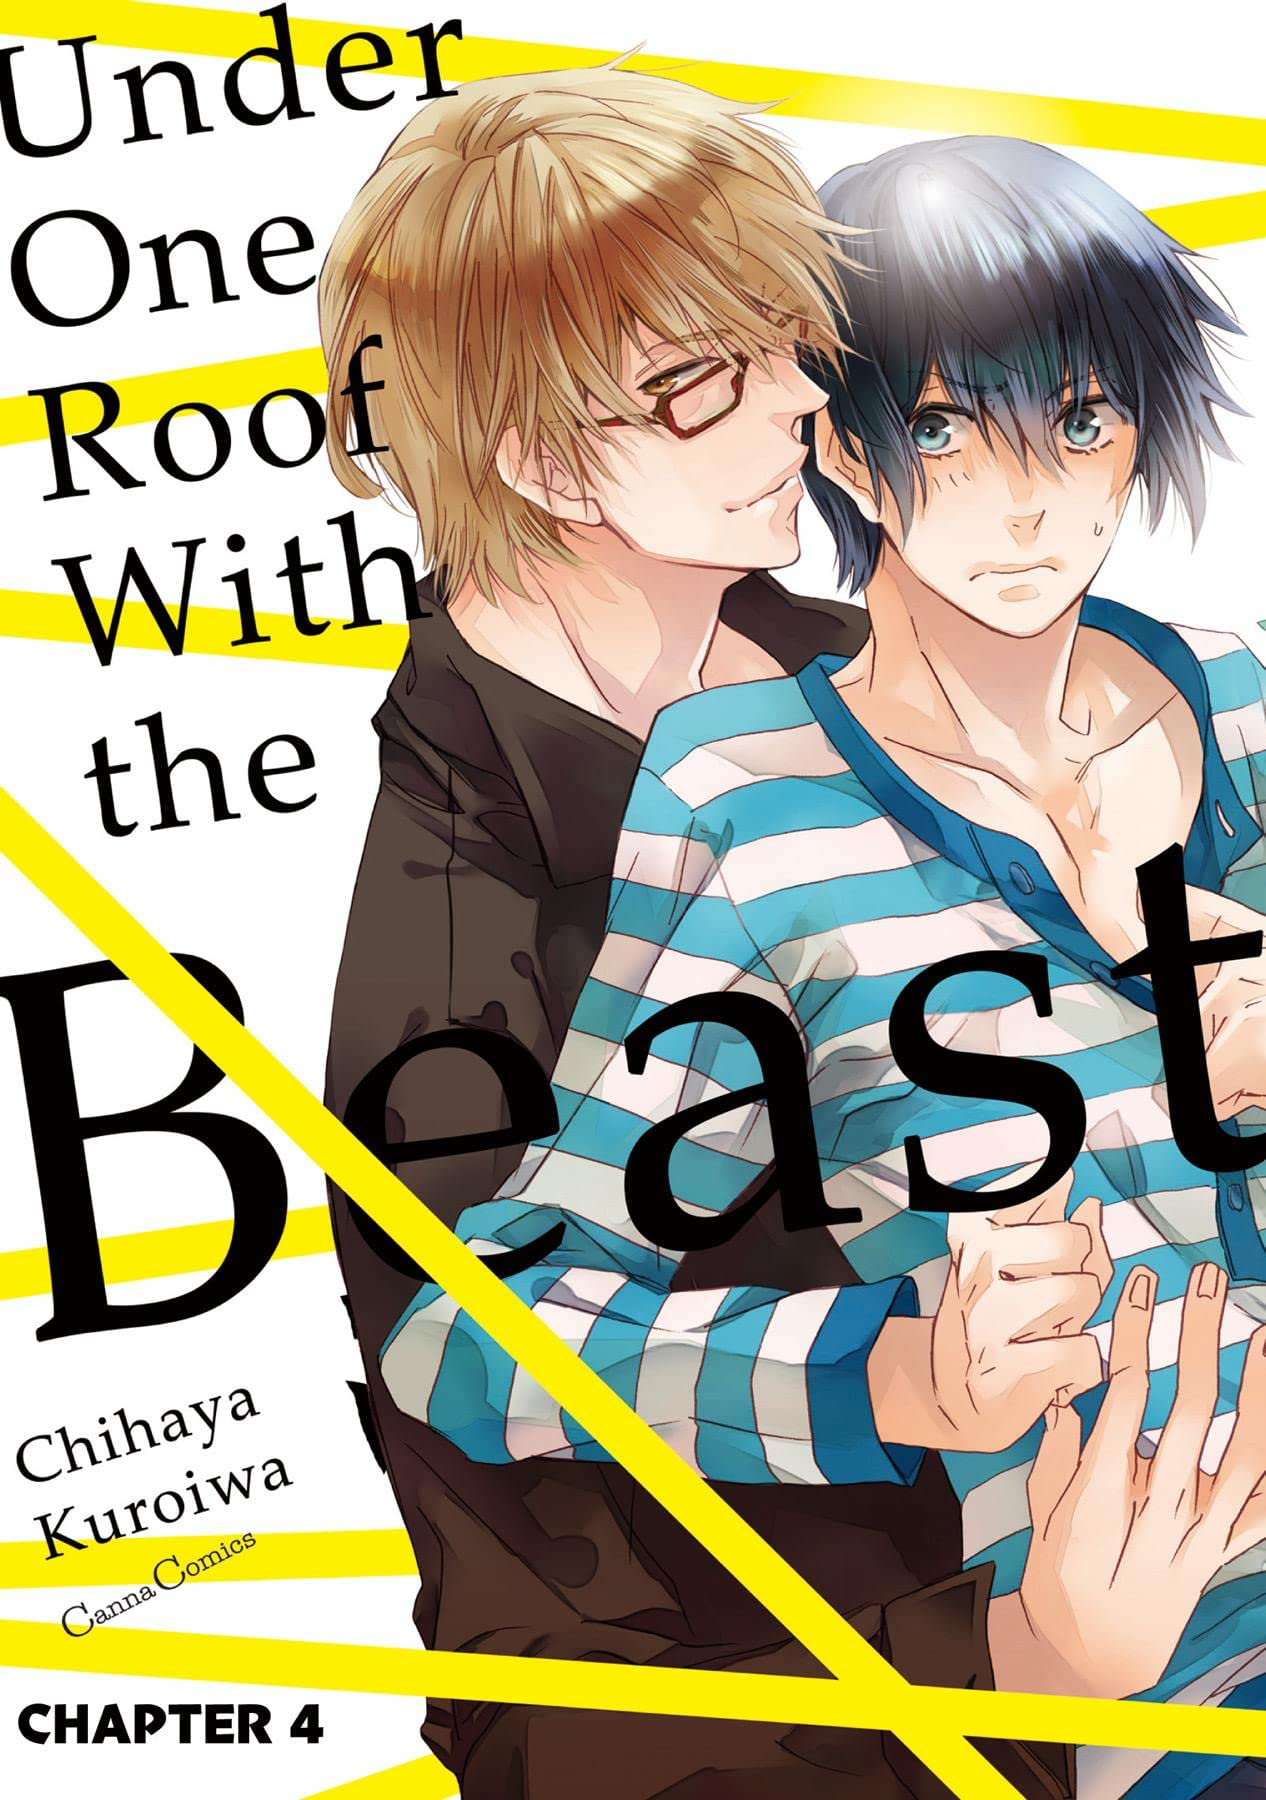 Under One Roof With the Beast (Yaoi Manga) #4